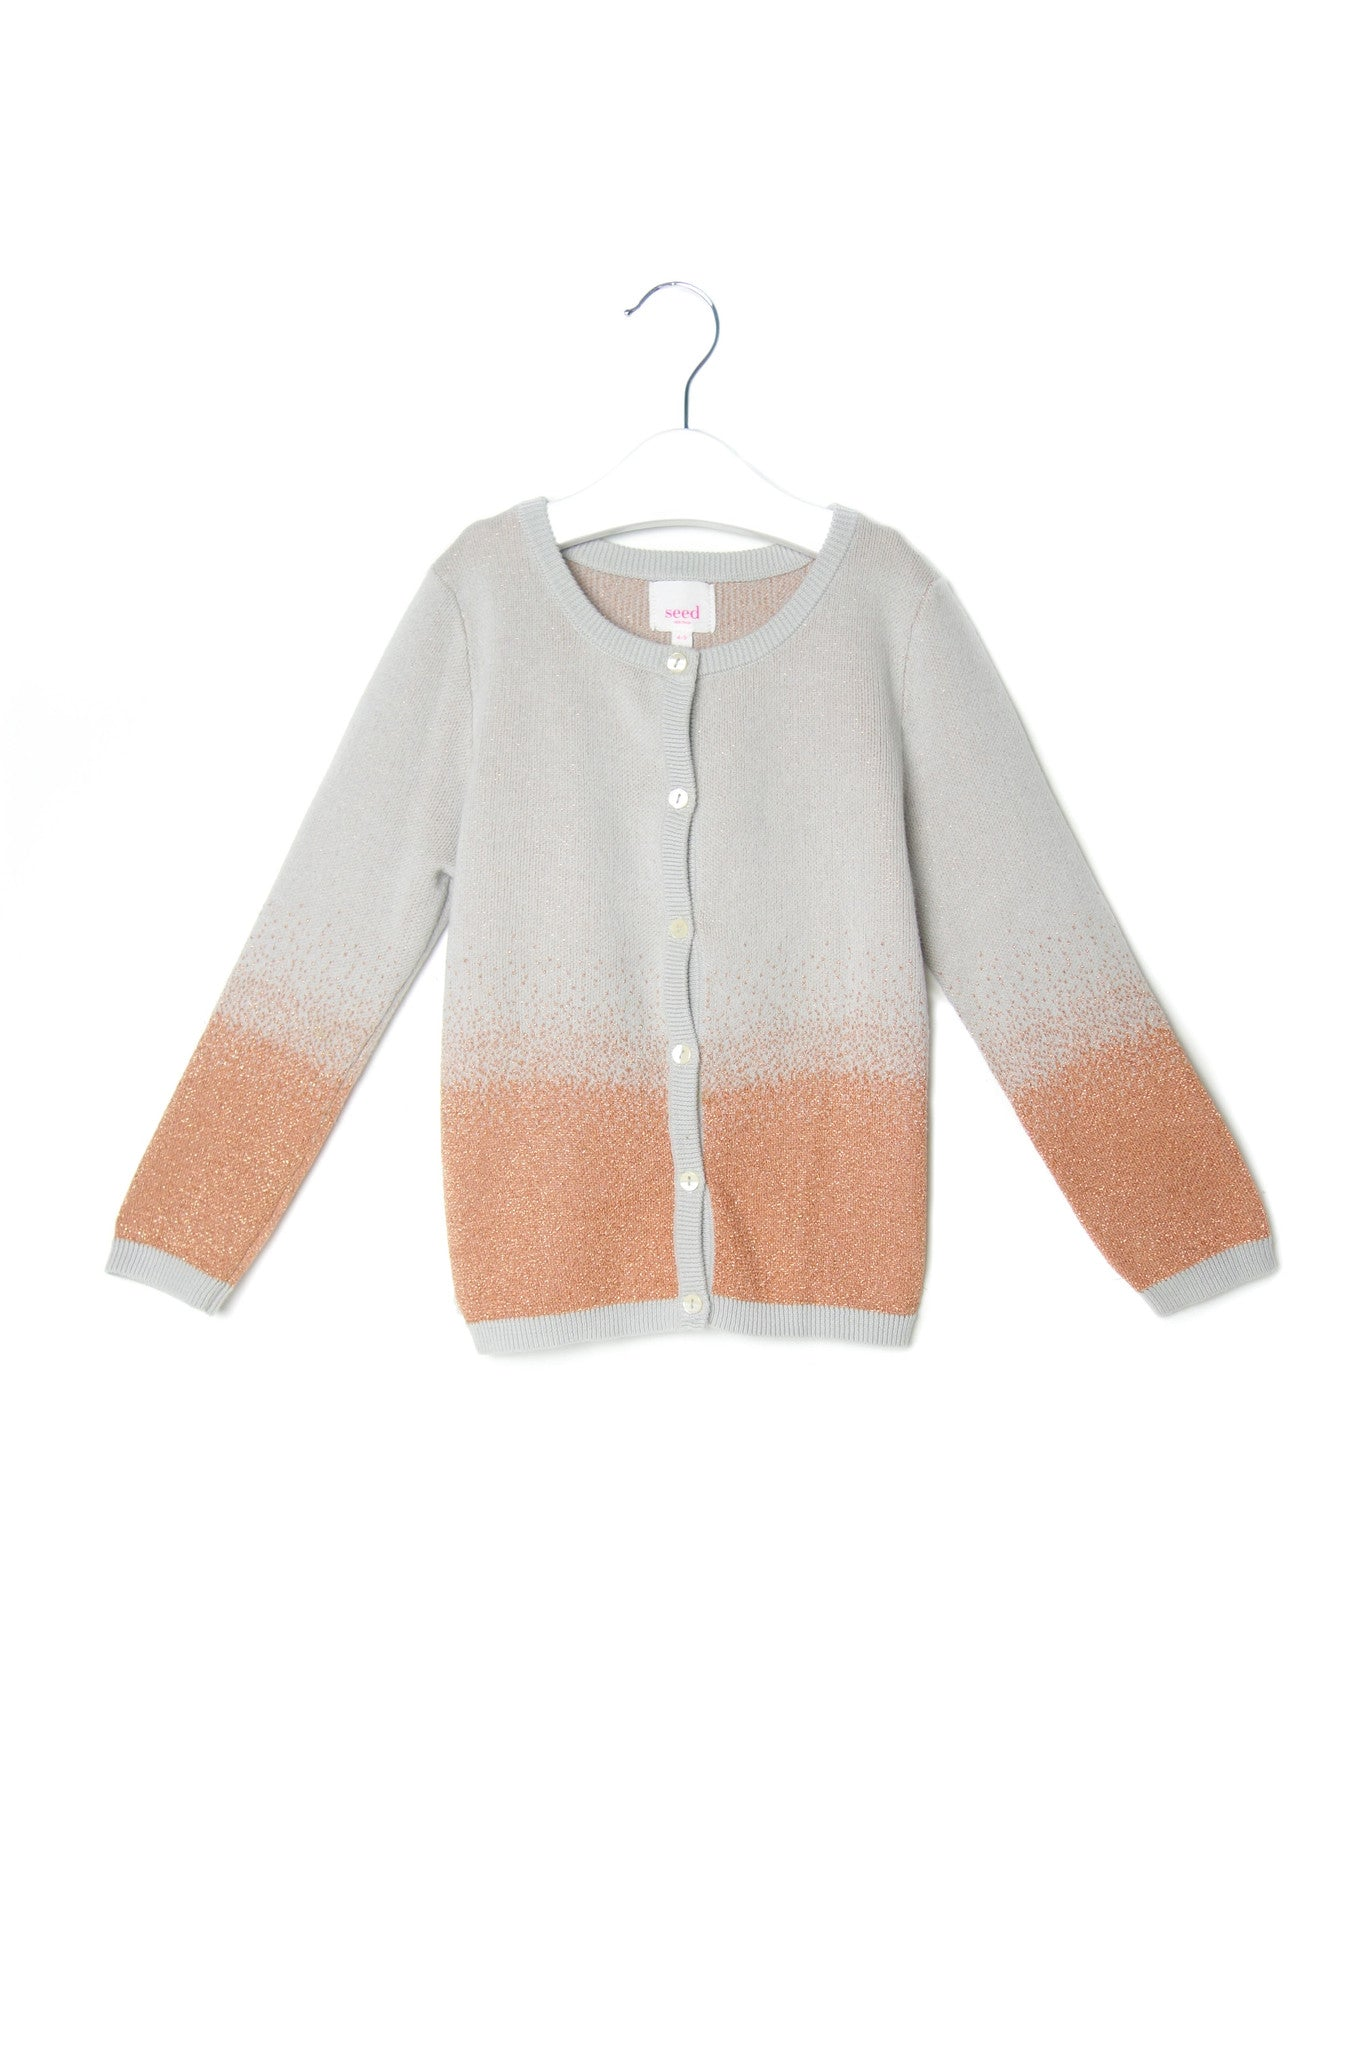 10001911 Seed Kids~Cardigan 4-5T at Retykle